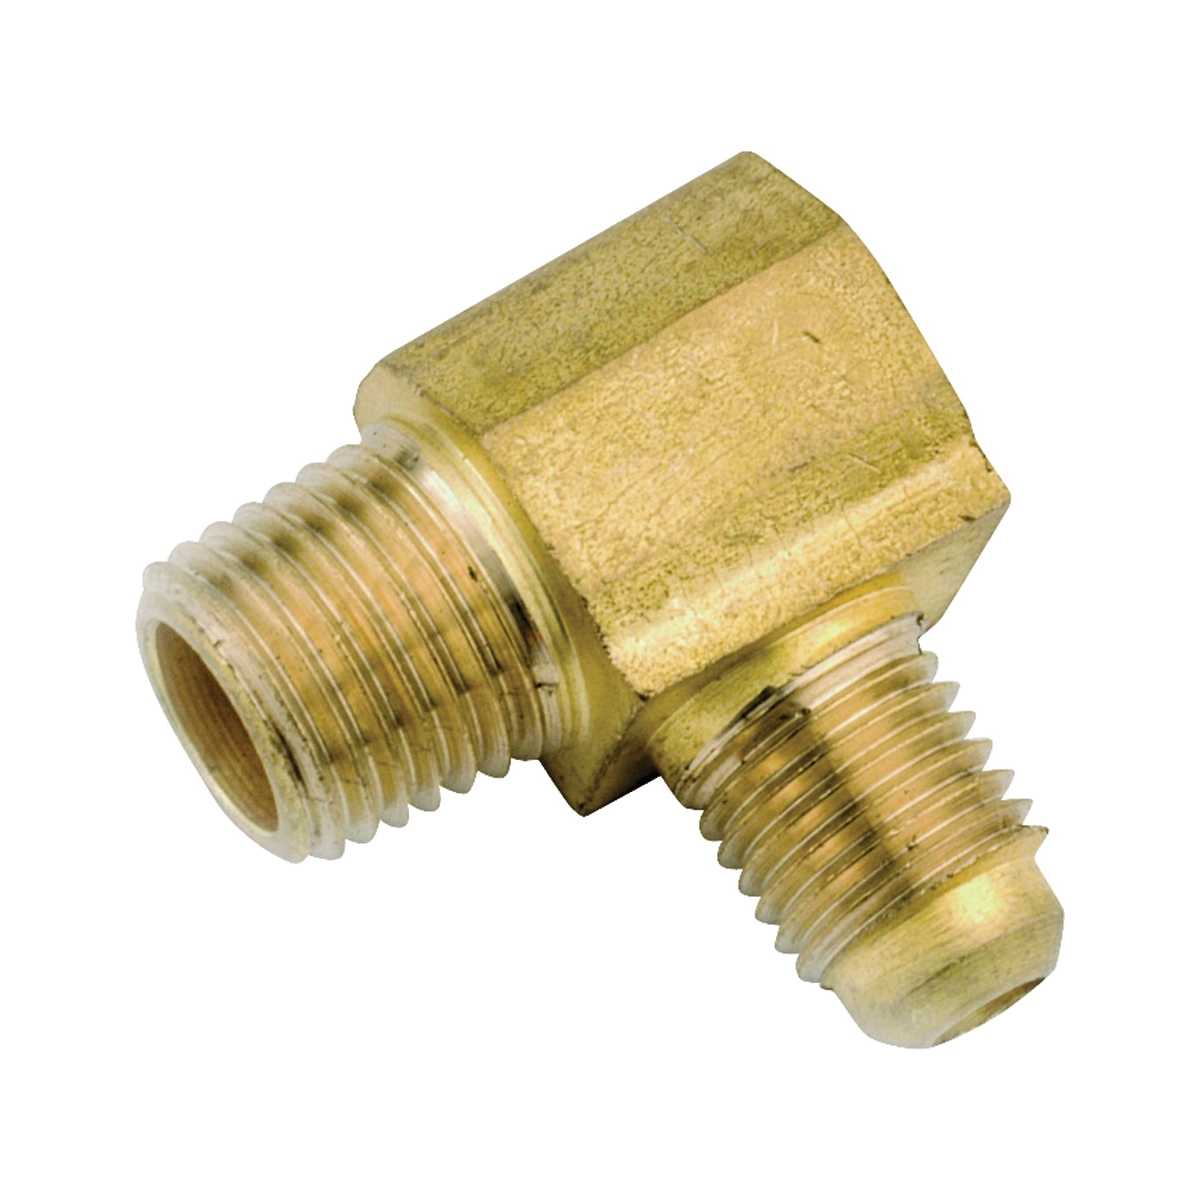 Picture of Anderson Metals 754049-0608 Tube Elbow, 3/8 x 1/2 in, 90 deg Angle, Lead-Free Brass, 1000 psi Pressure